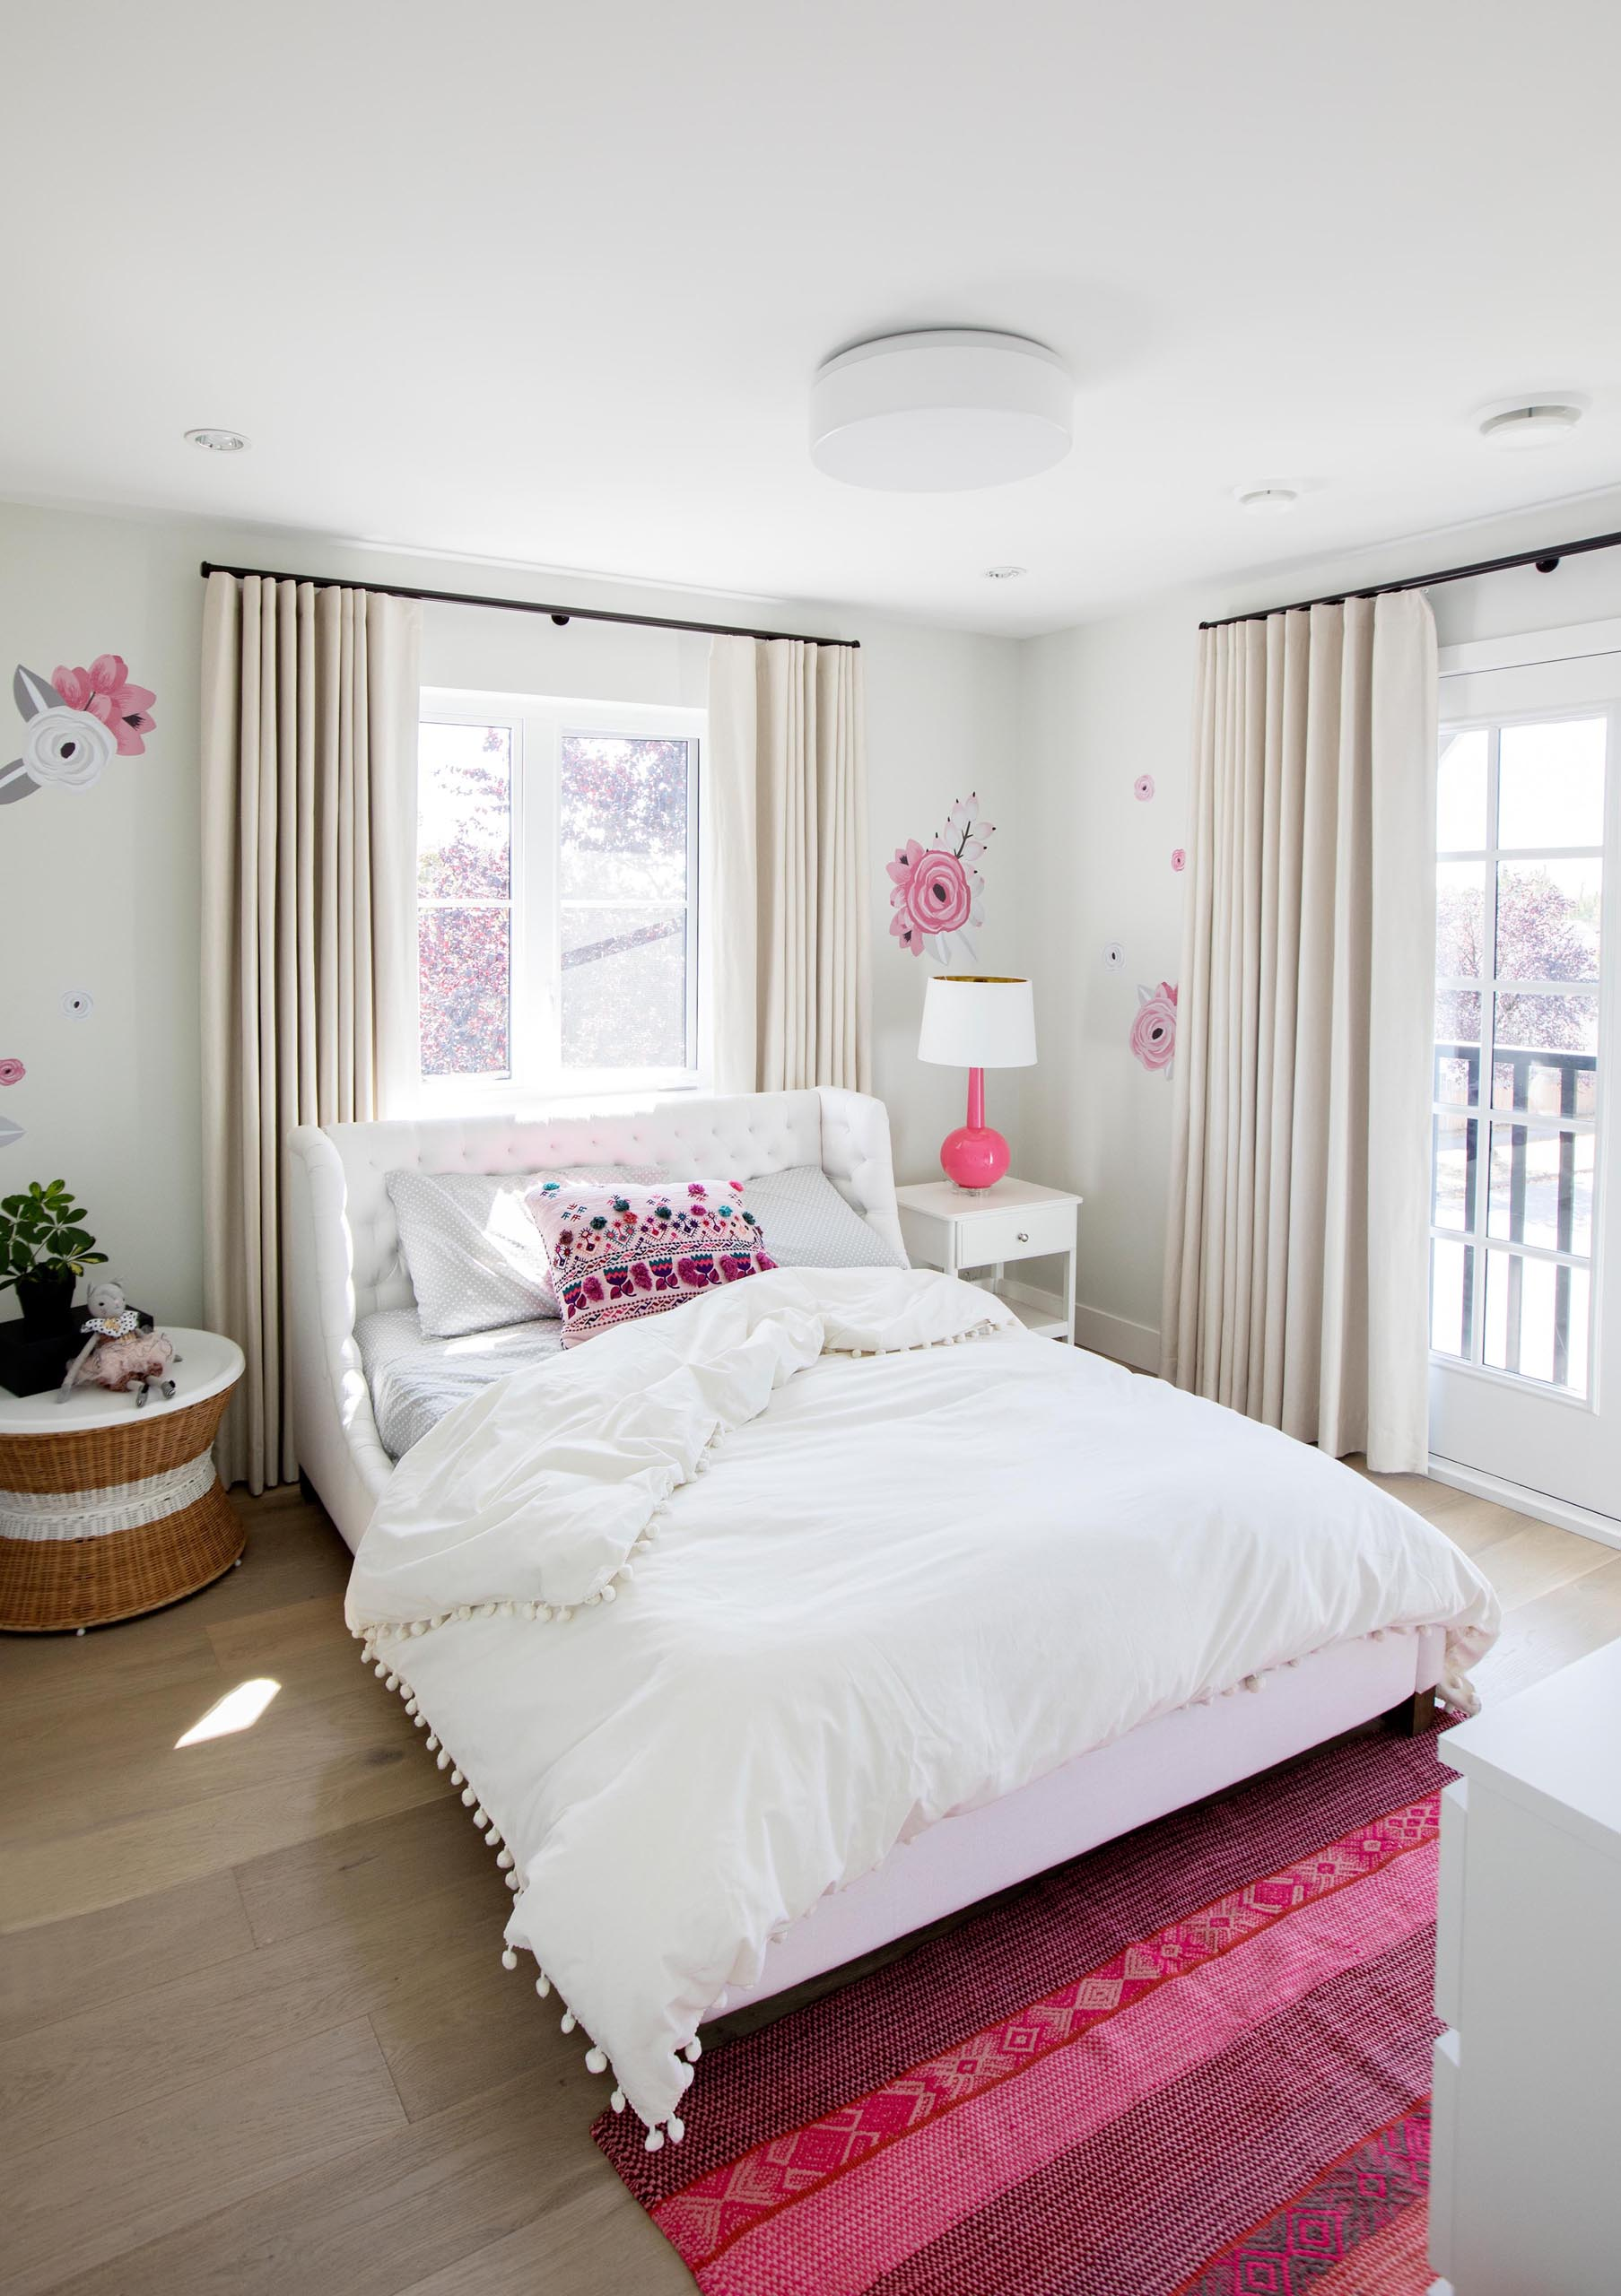 In this bedroom, a pink and white color palette has been chosen. Floral accents adorn the walls, and a striped pink rug is located at the end of the bed,